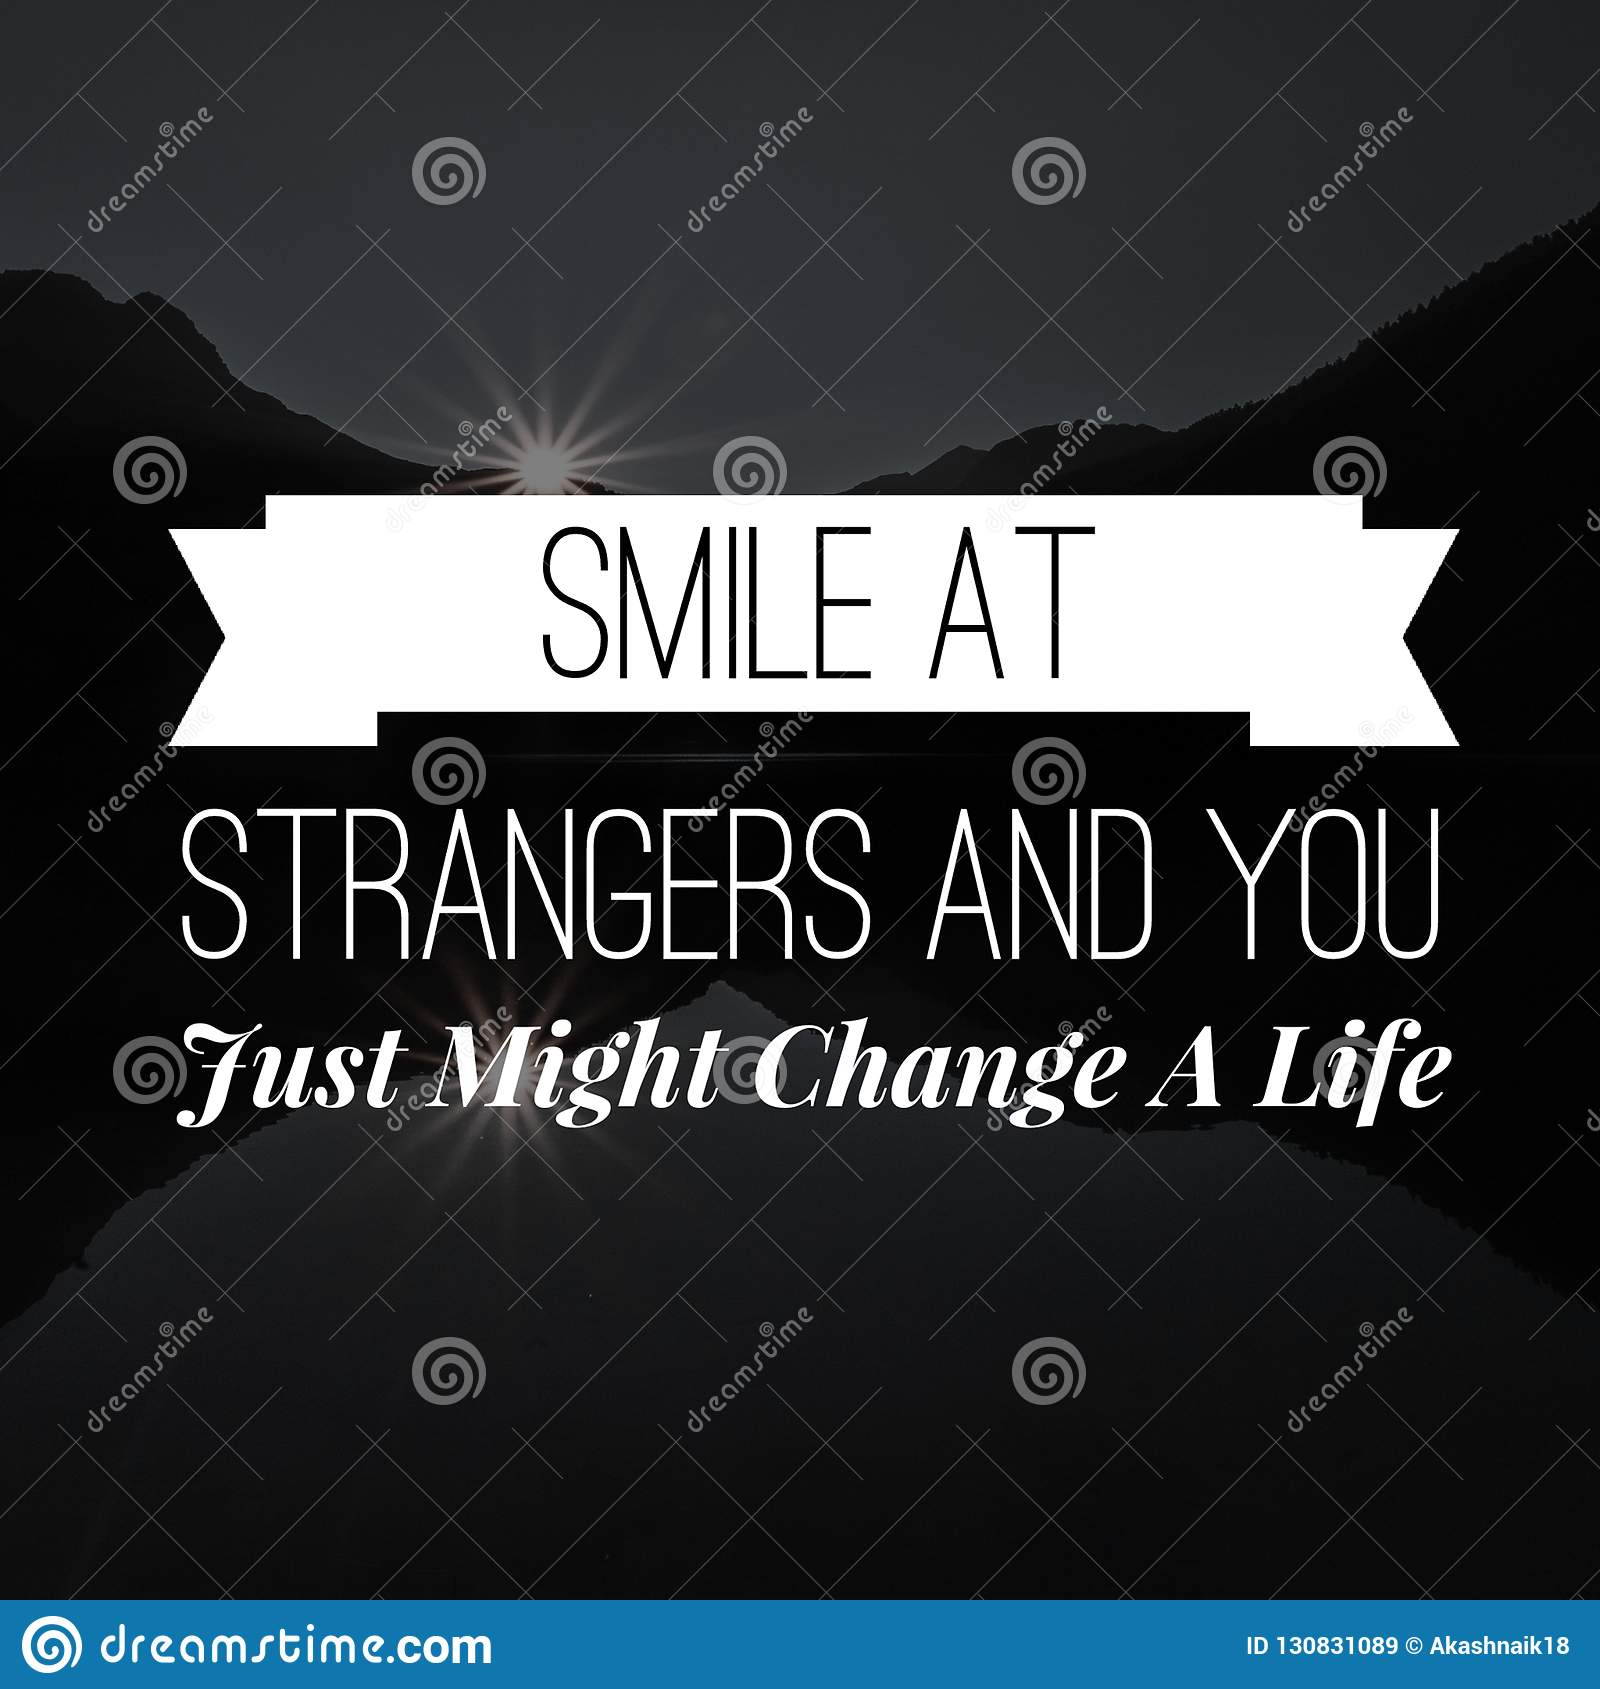 Inspirational Quotes Smile At Strangers And You Just Might Change A